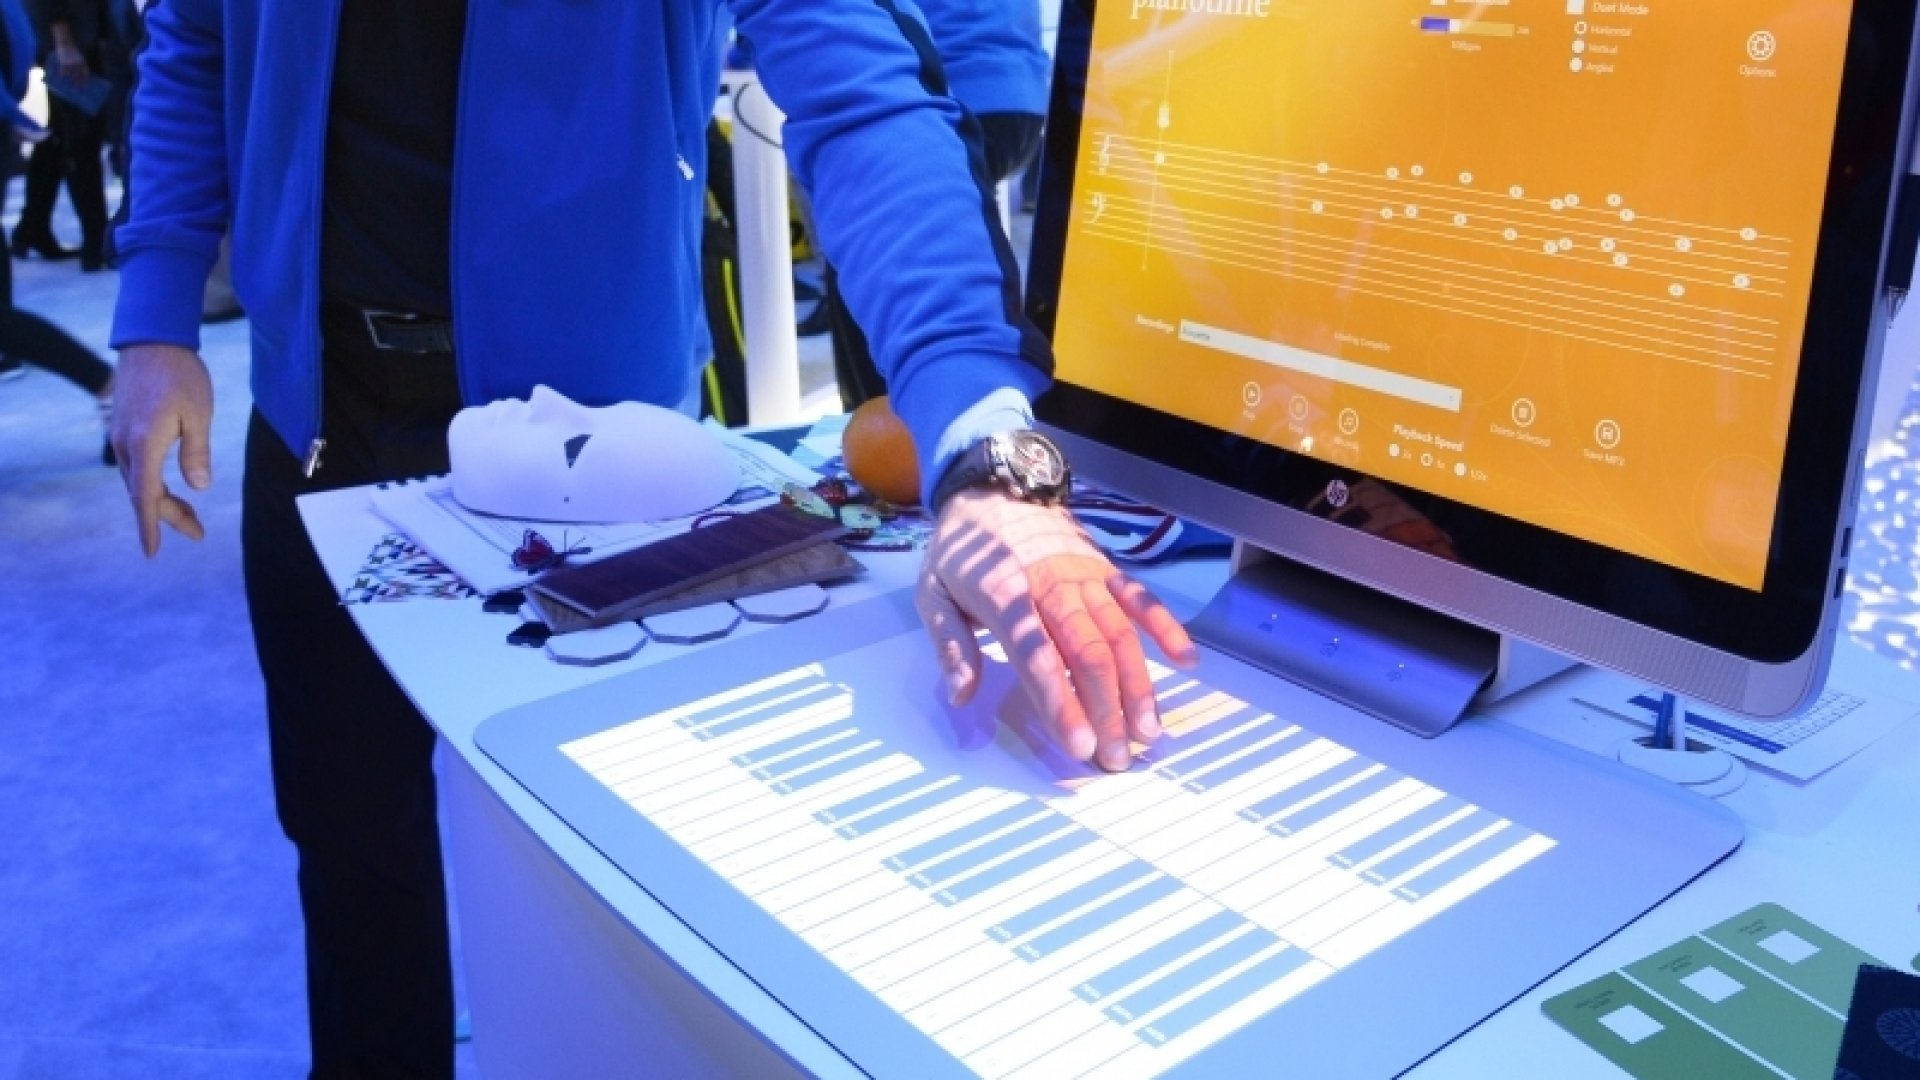 5 New Gadgets From CES That Will Change How You Work